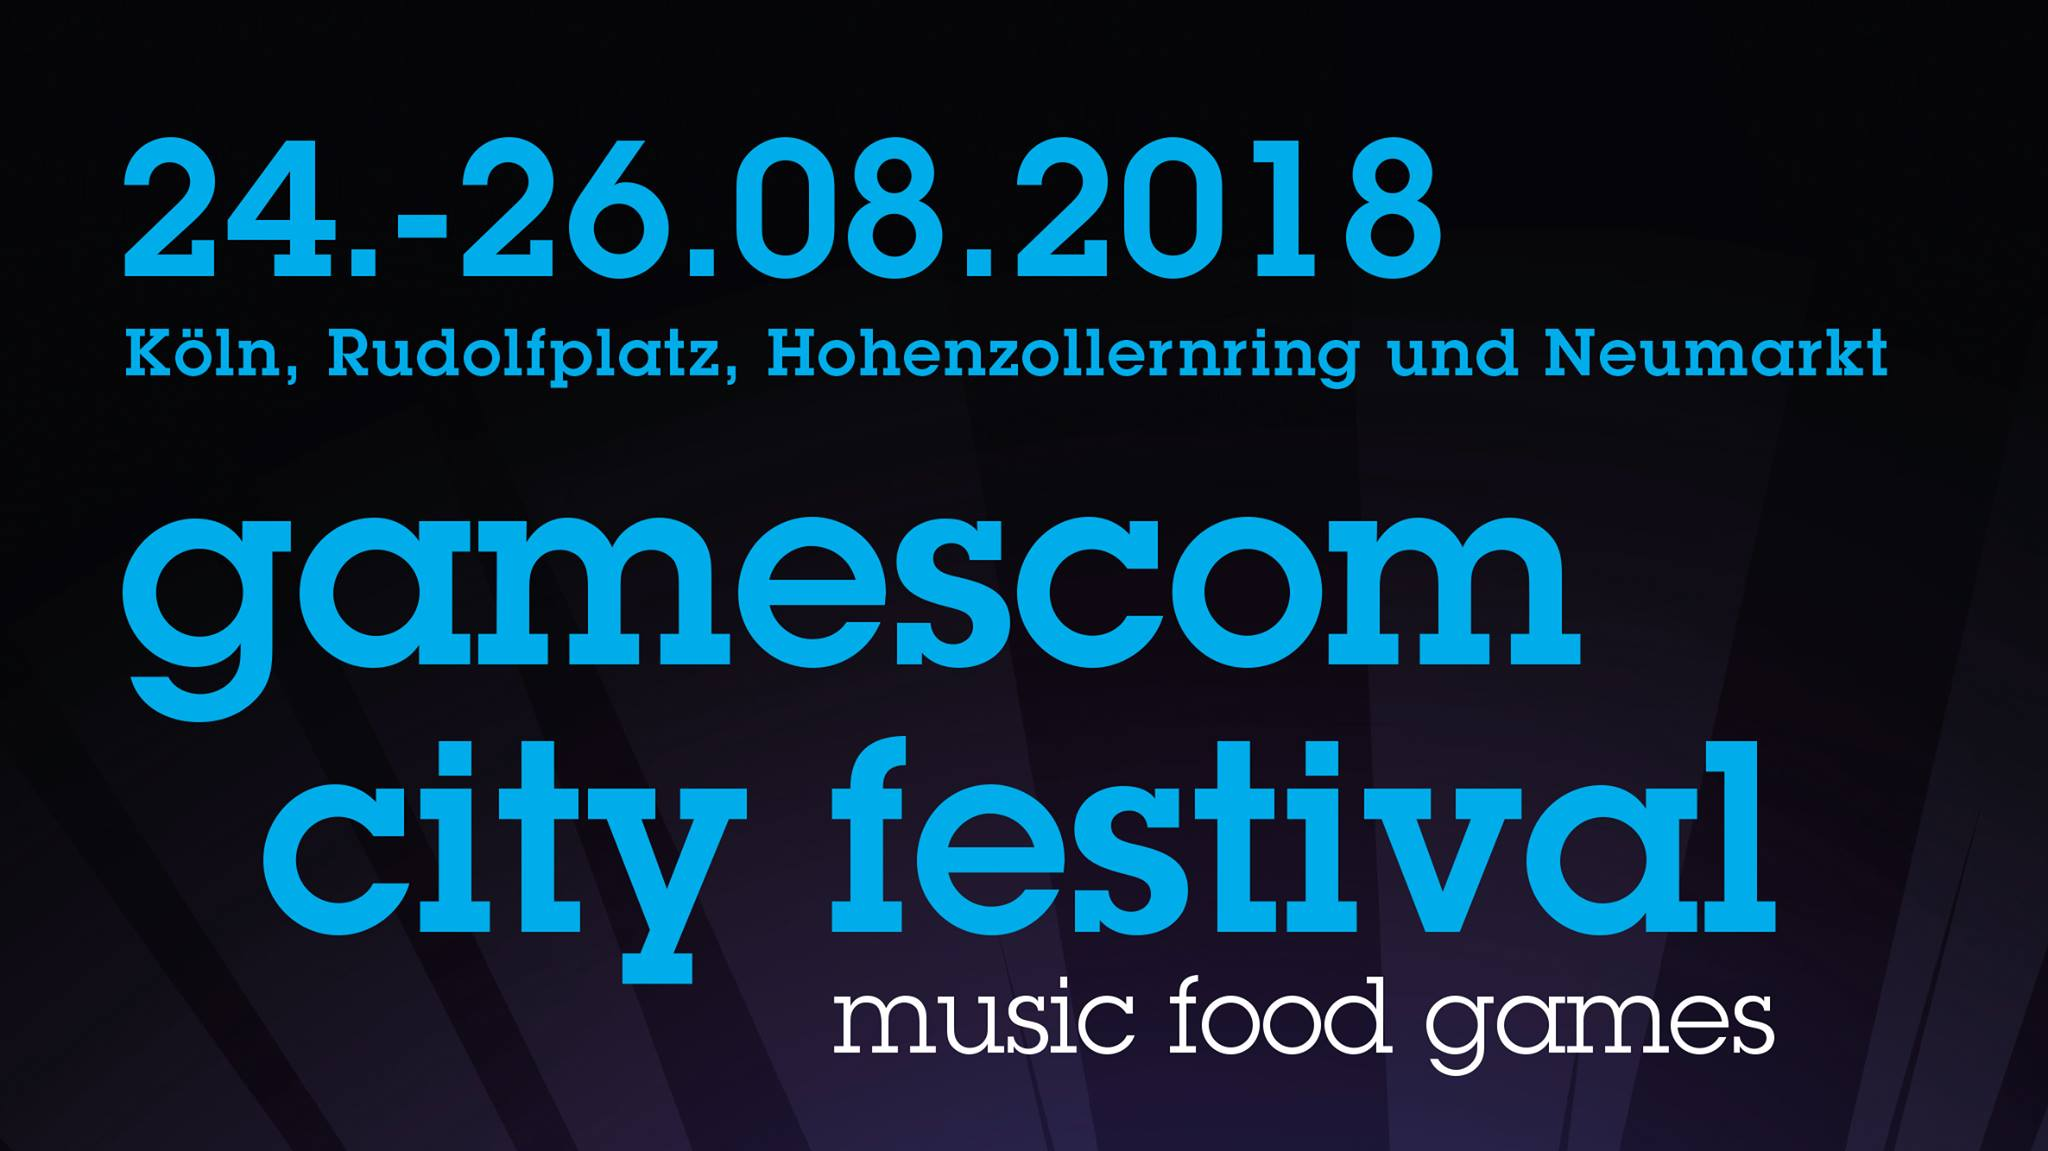 gamescom city festival